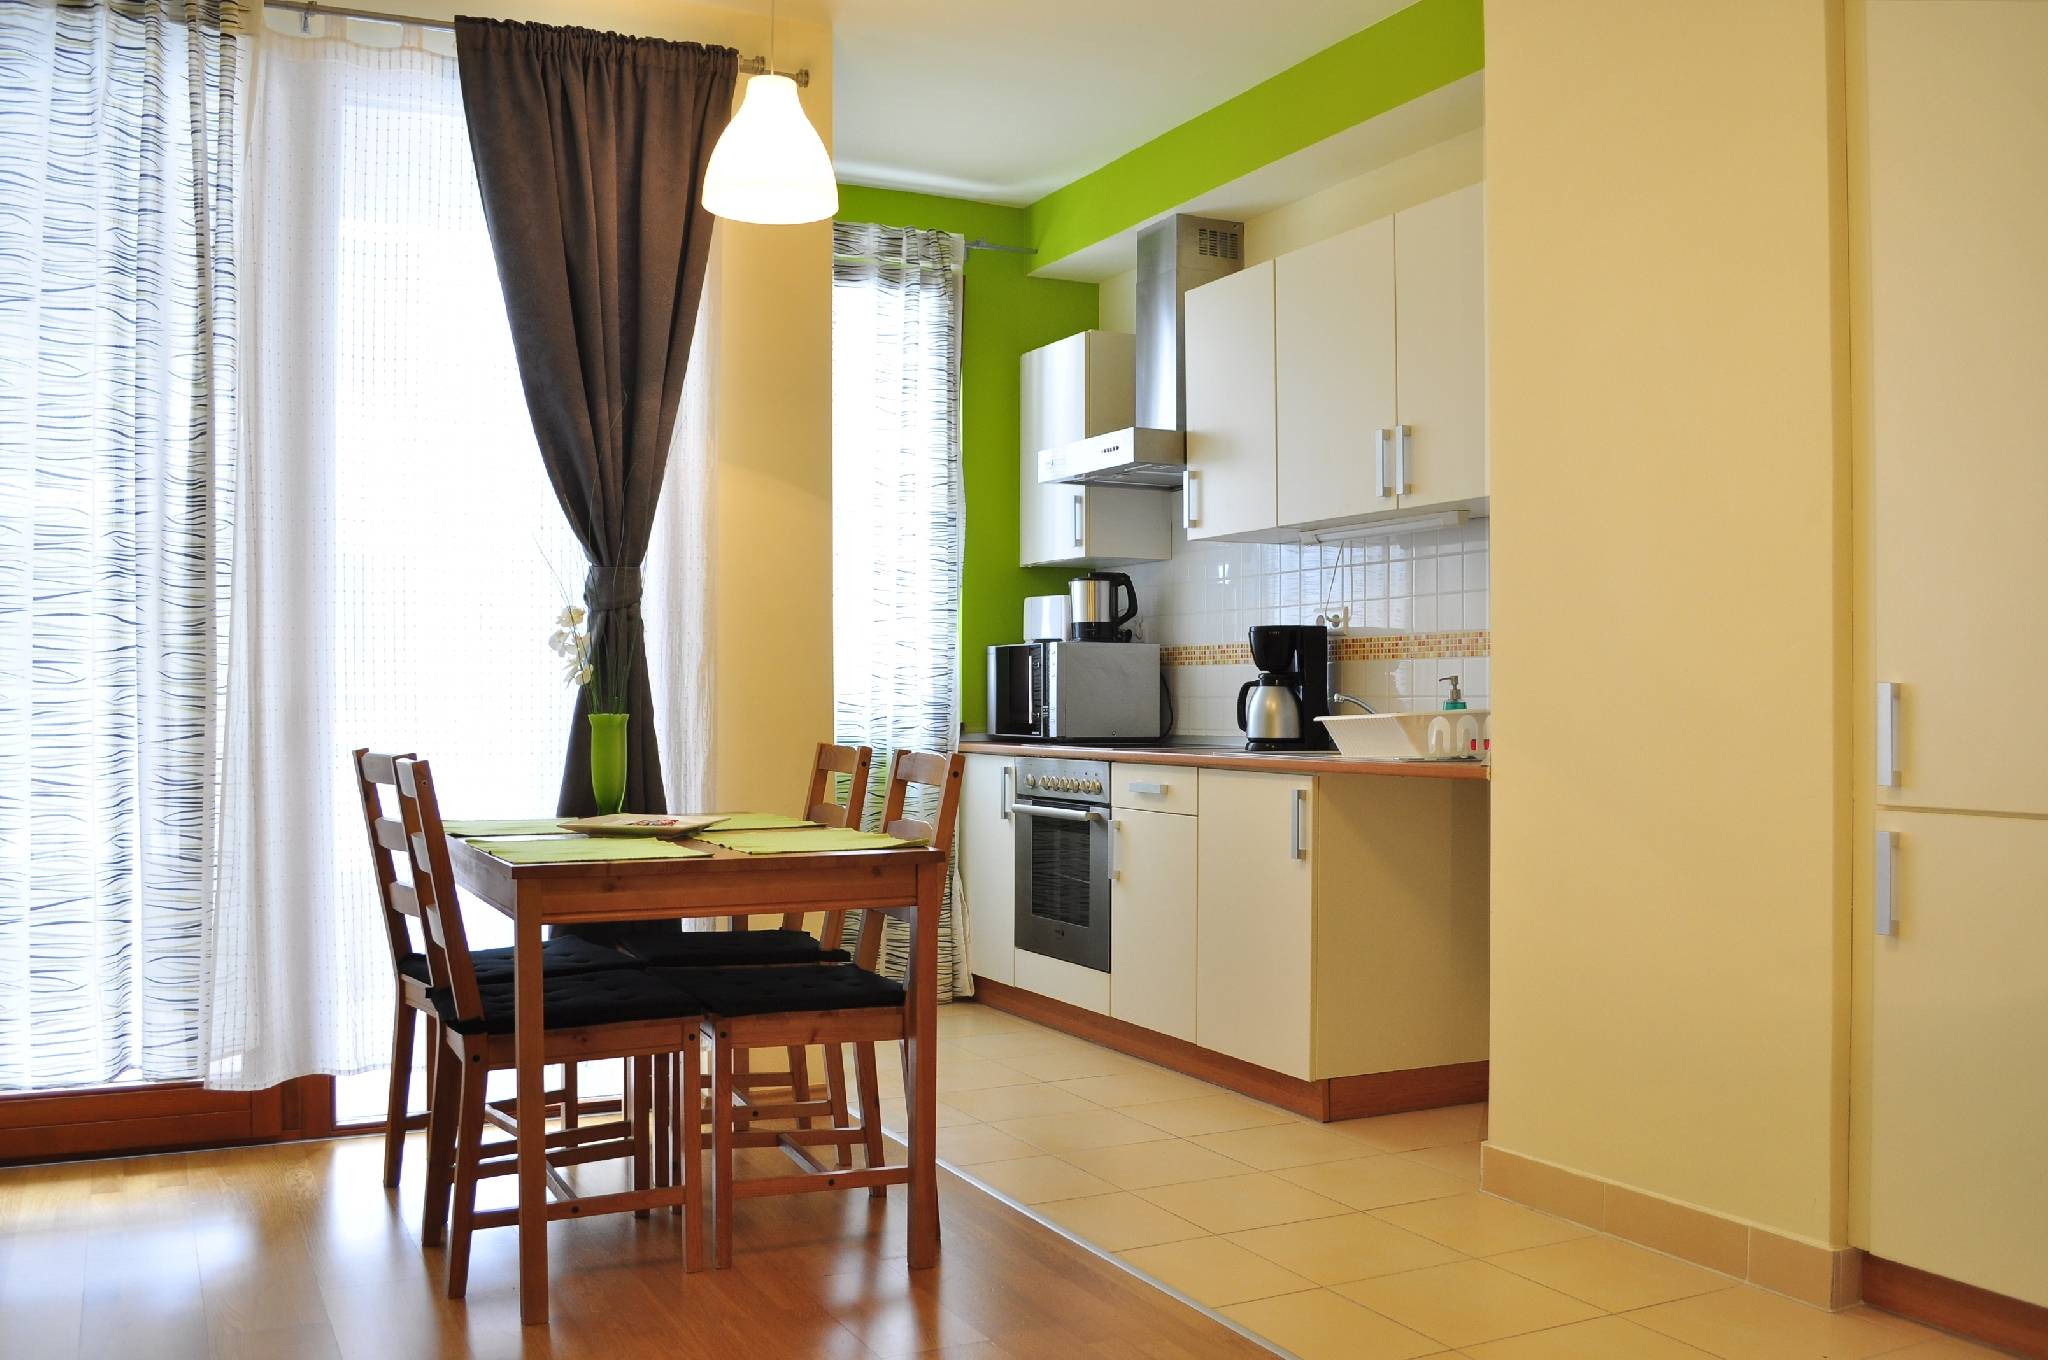 Superior executive 4 fős apartman 2 hálótérrel